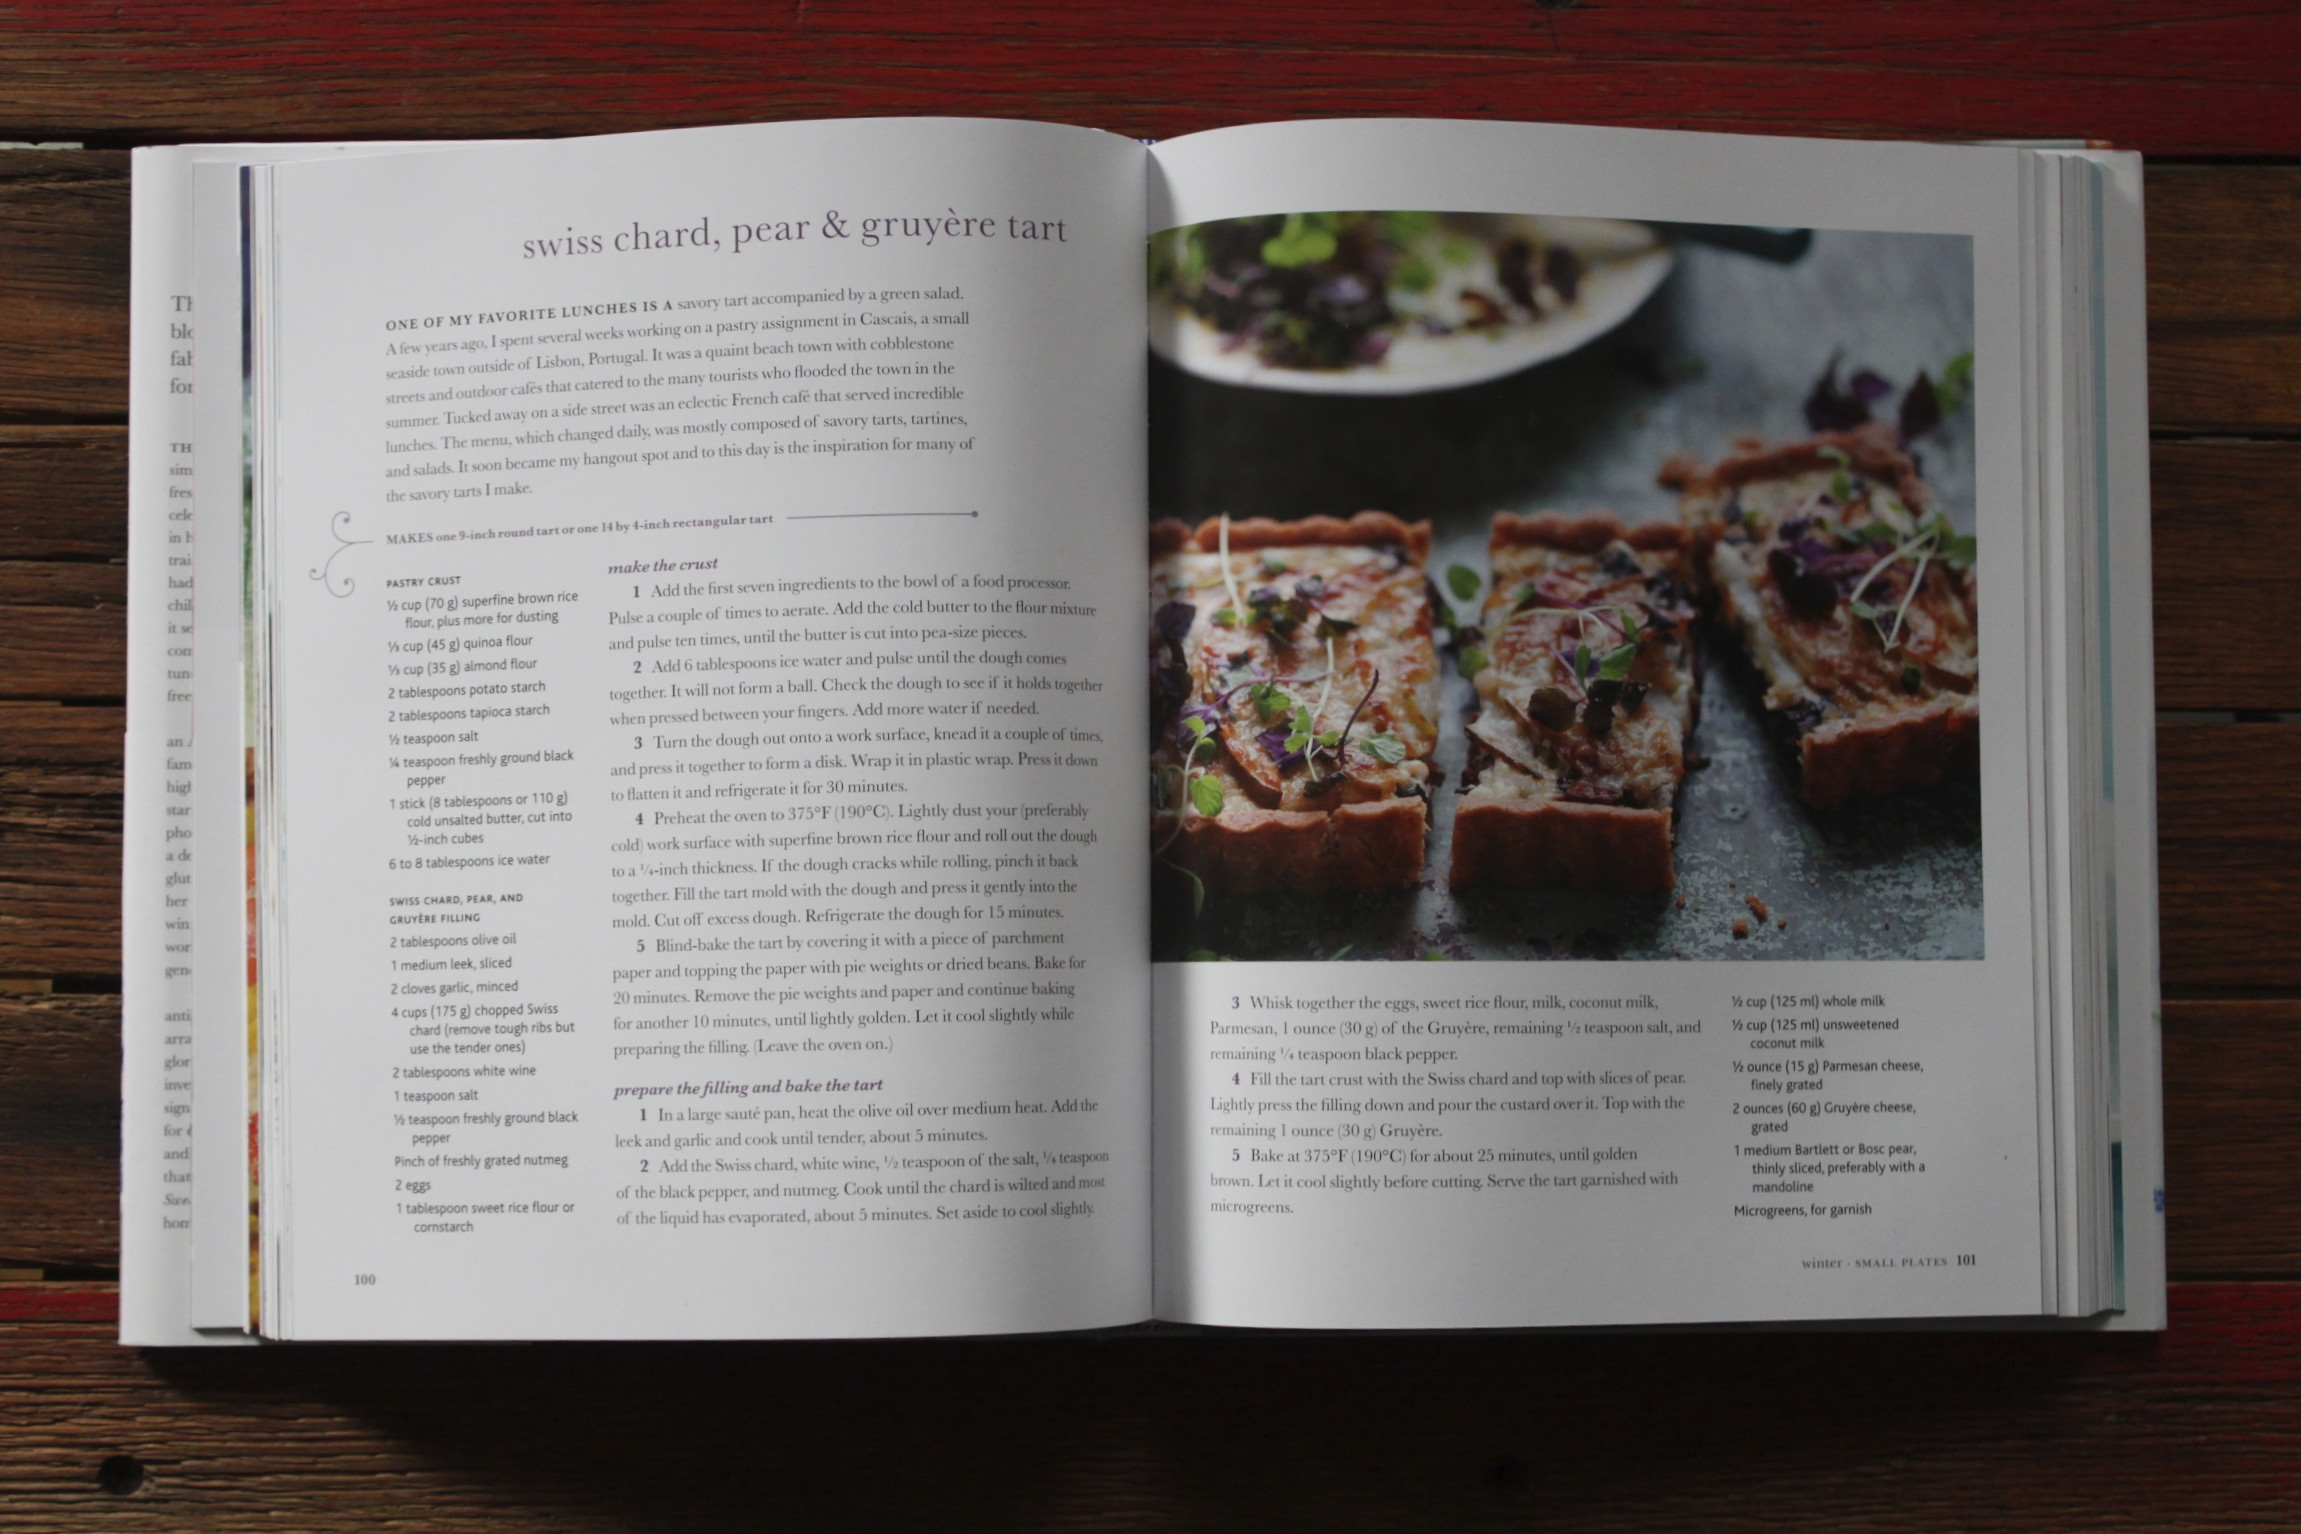 White apron gluten free -  In Particular Combines All The Elements I Love A New Way To Look At The Dwindling Fall Market Produce And A Reason To Use The Variety Of Gluten Free